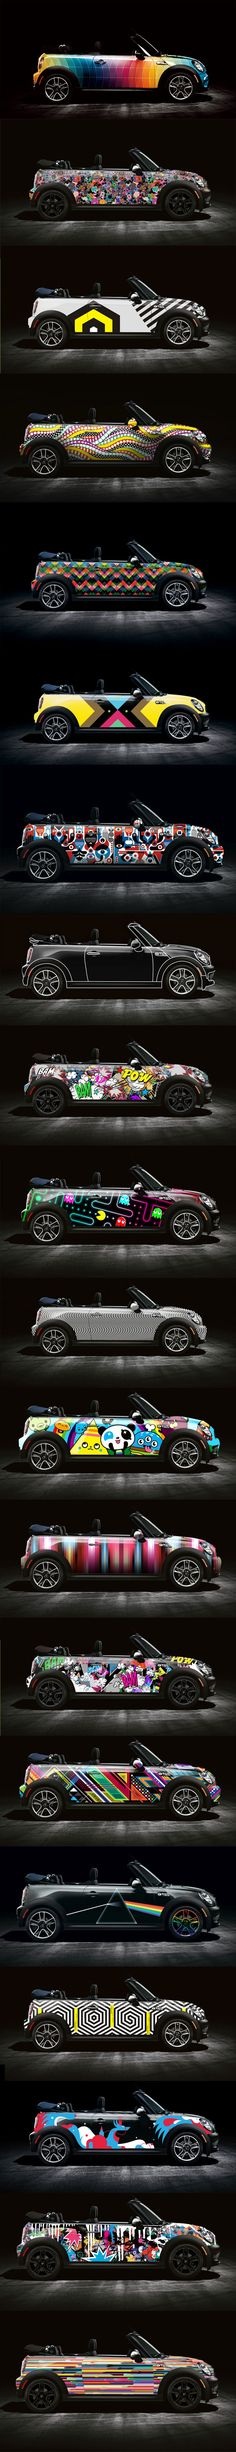 The Mini Wrap Show Learn How I make great money by sharing cool pic like this! http://CrazyCashDeposits.com